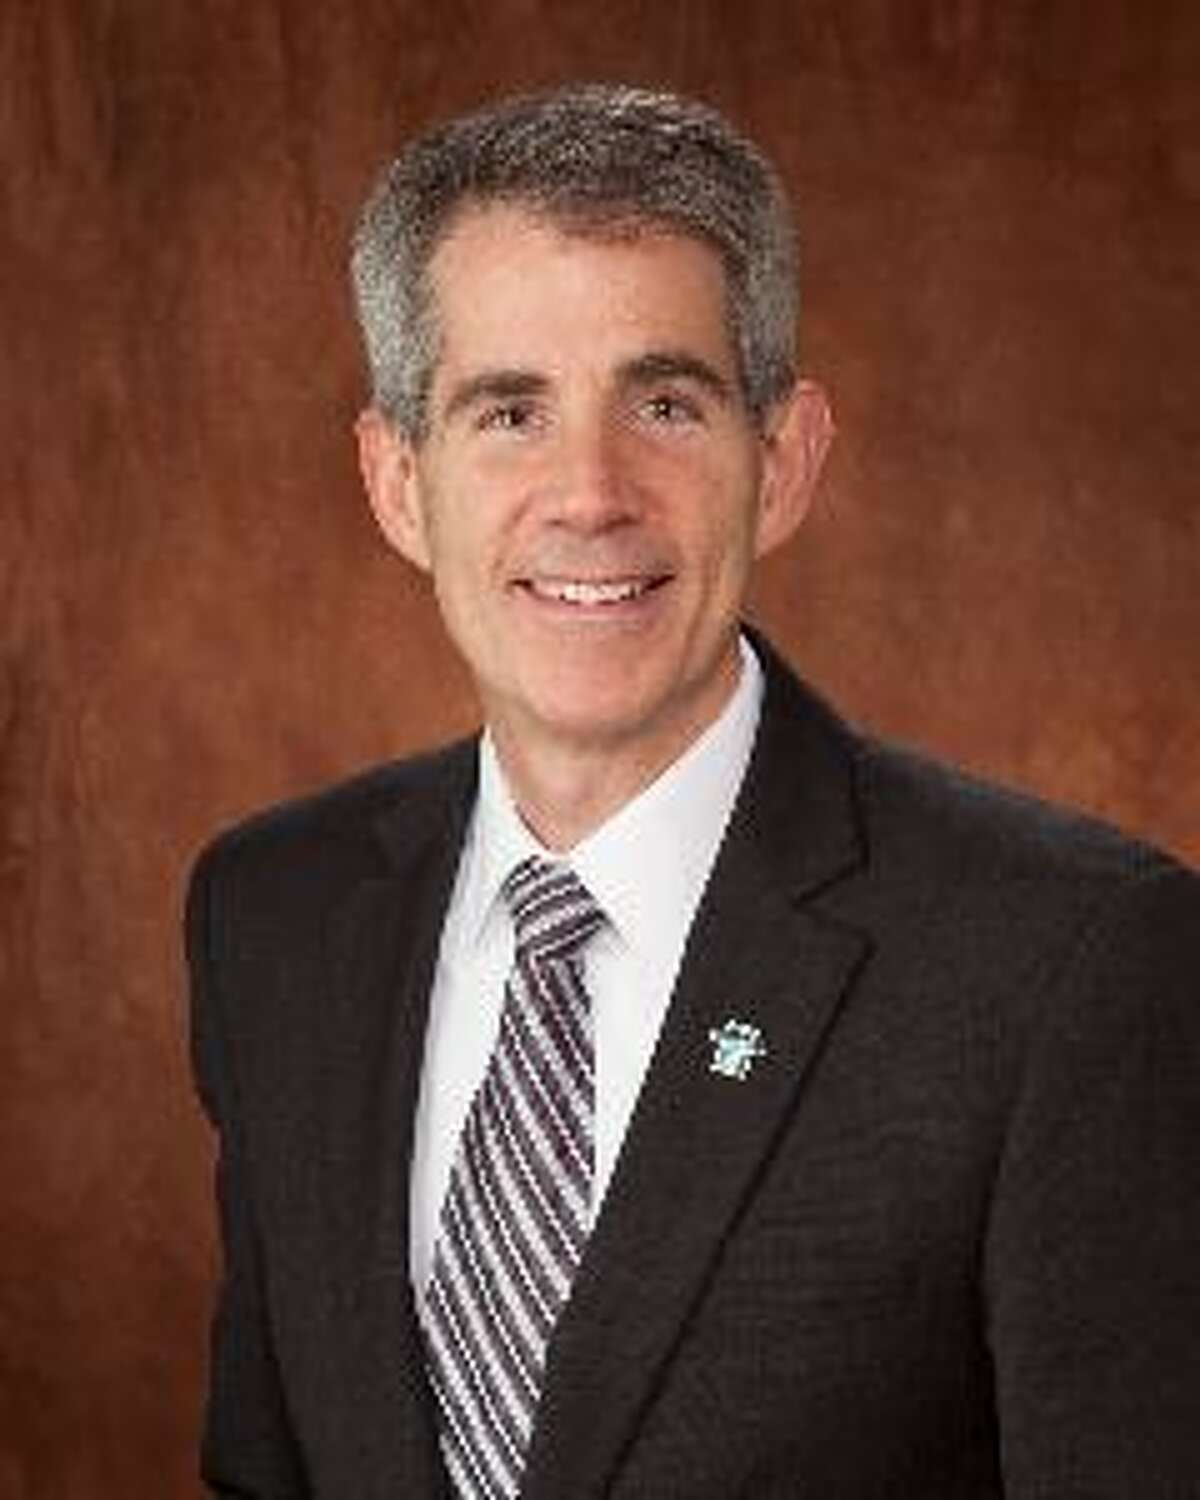 Snoqualmie Mayor Matt Larson has tested positive for COVID-19. The mayor said he has been self-isolating and will continue to do so.